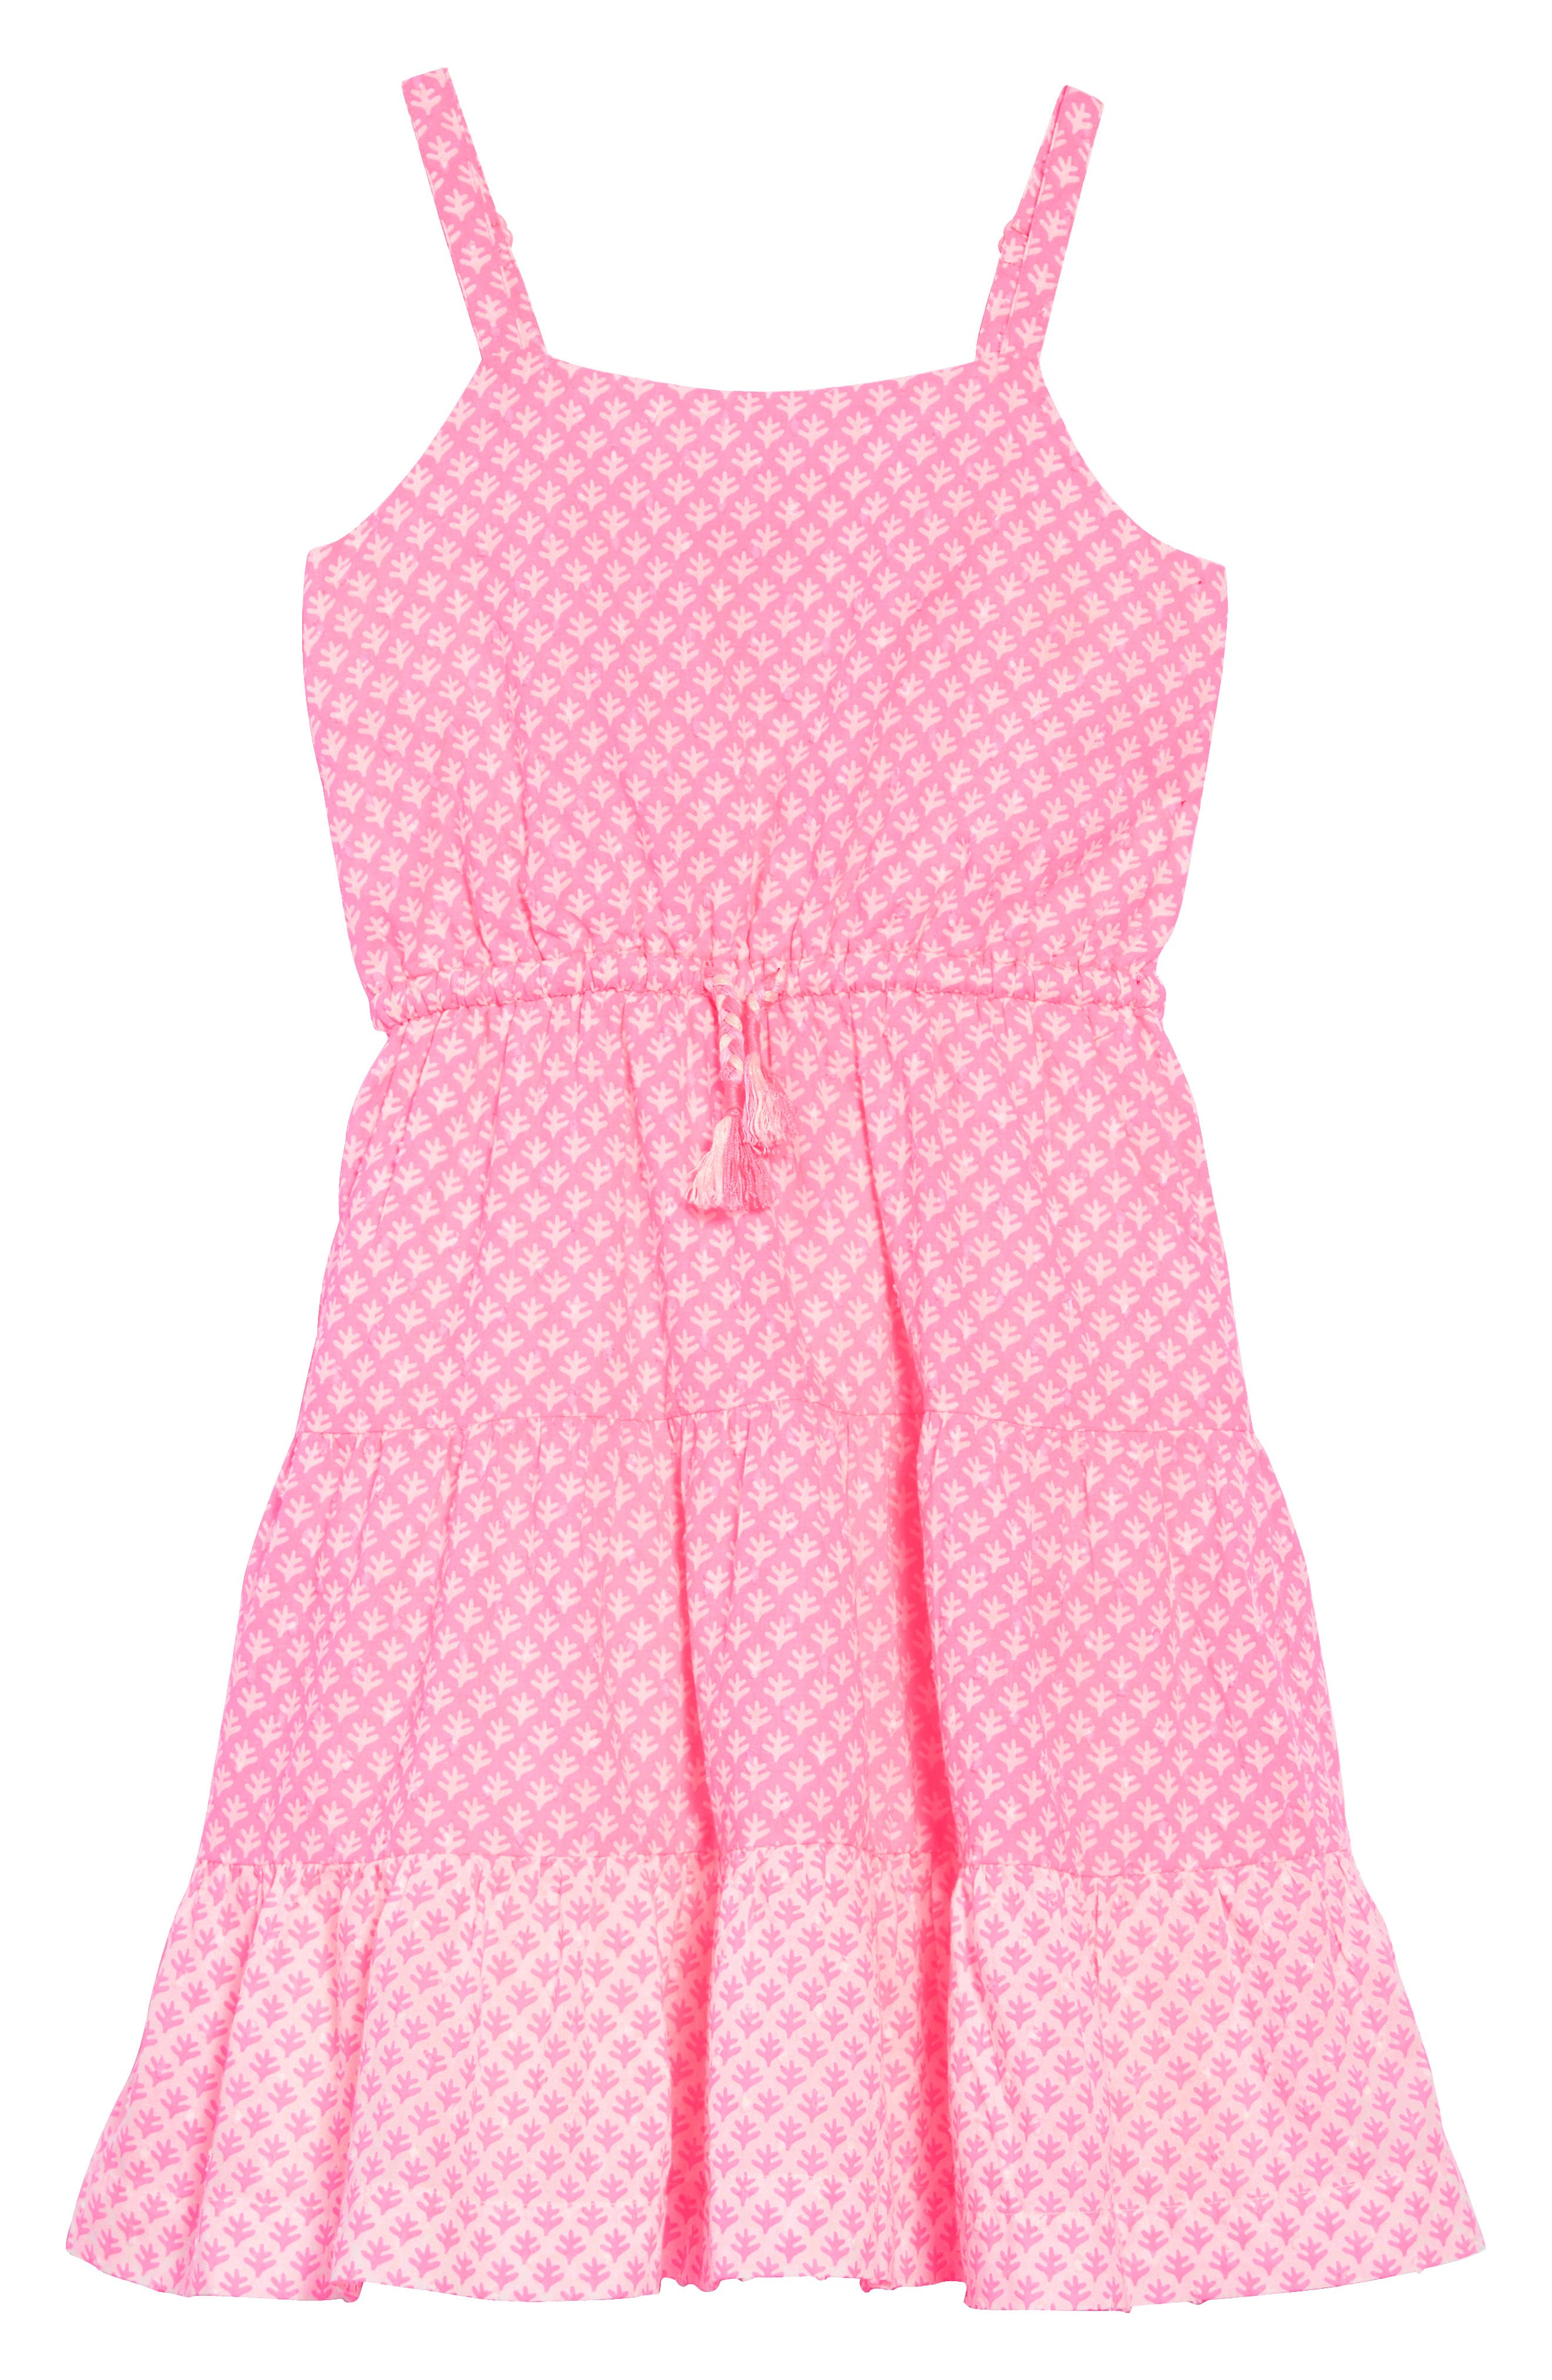 Tiered Strappy Woven Dress,                             Main thumbnail 1, color,                             664